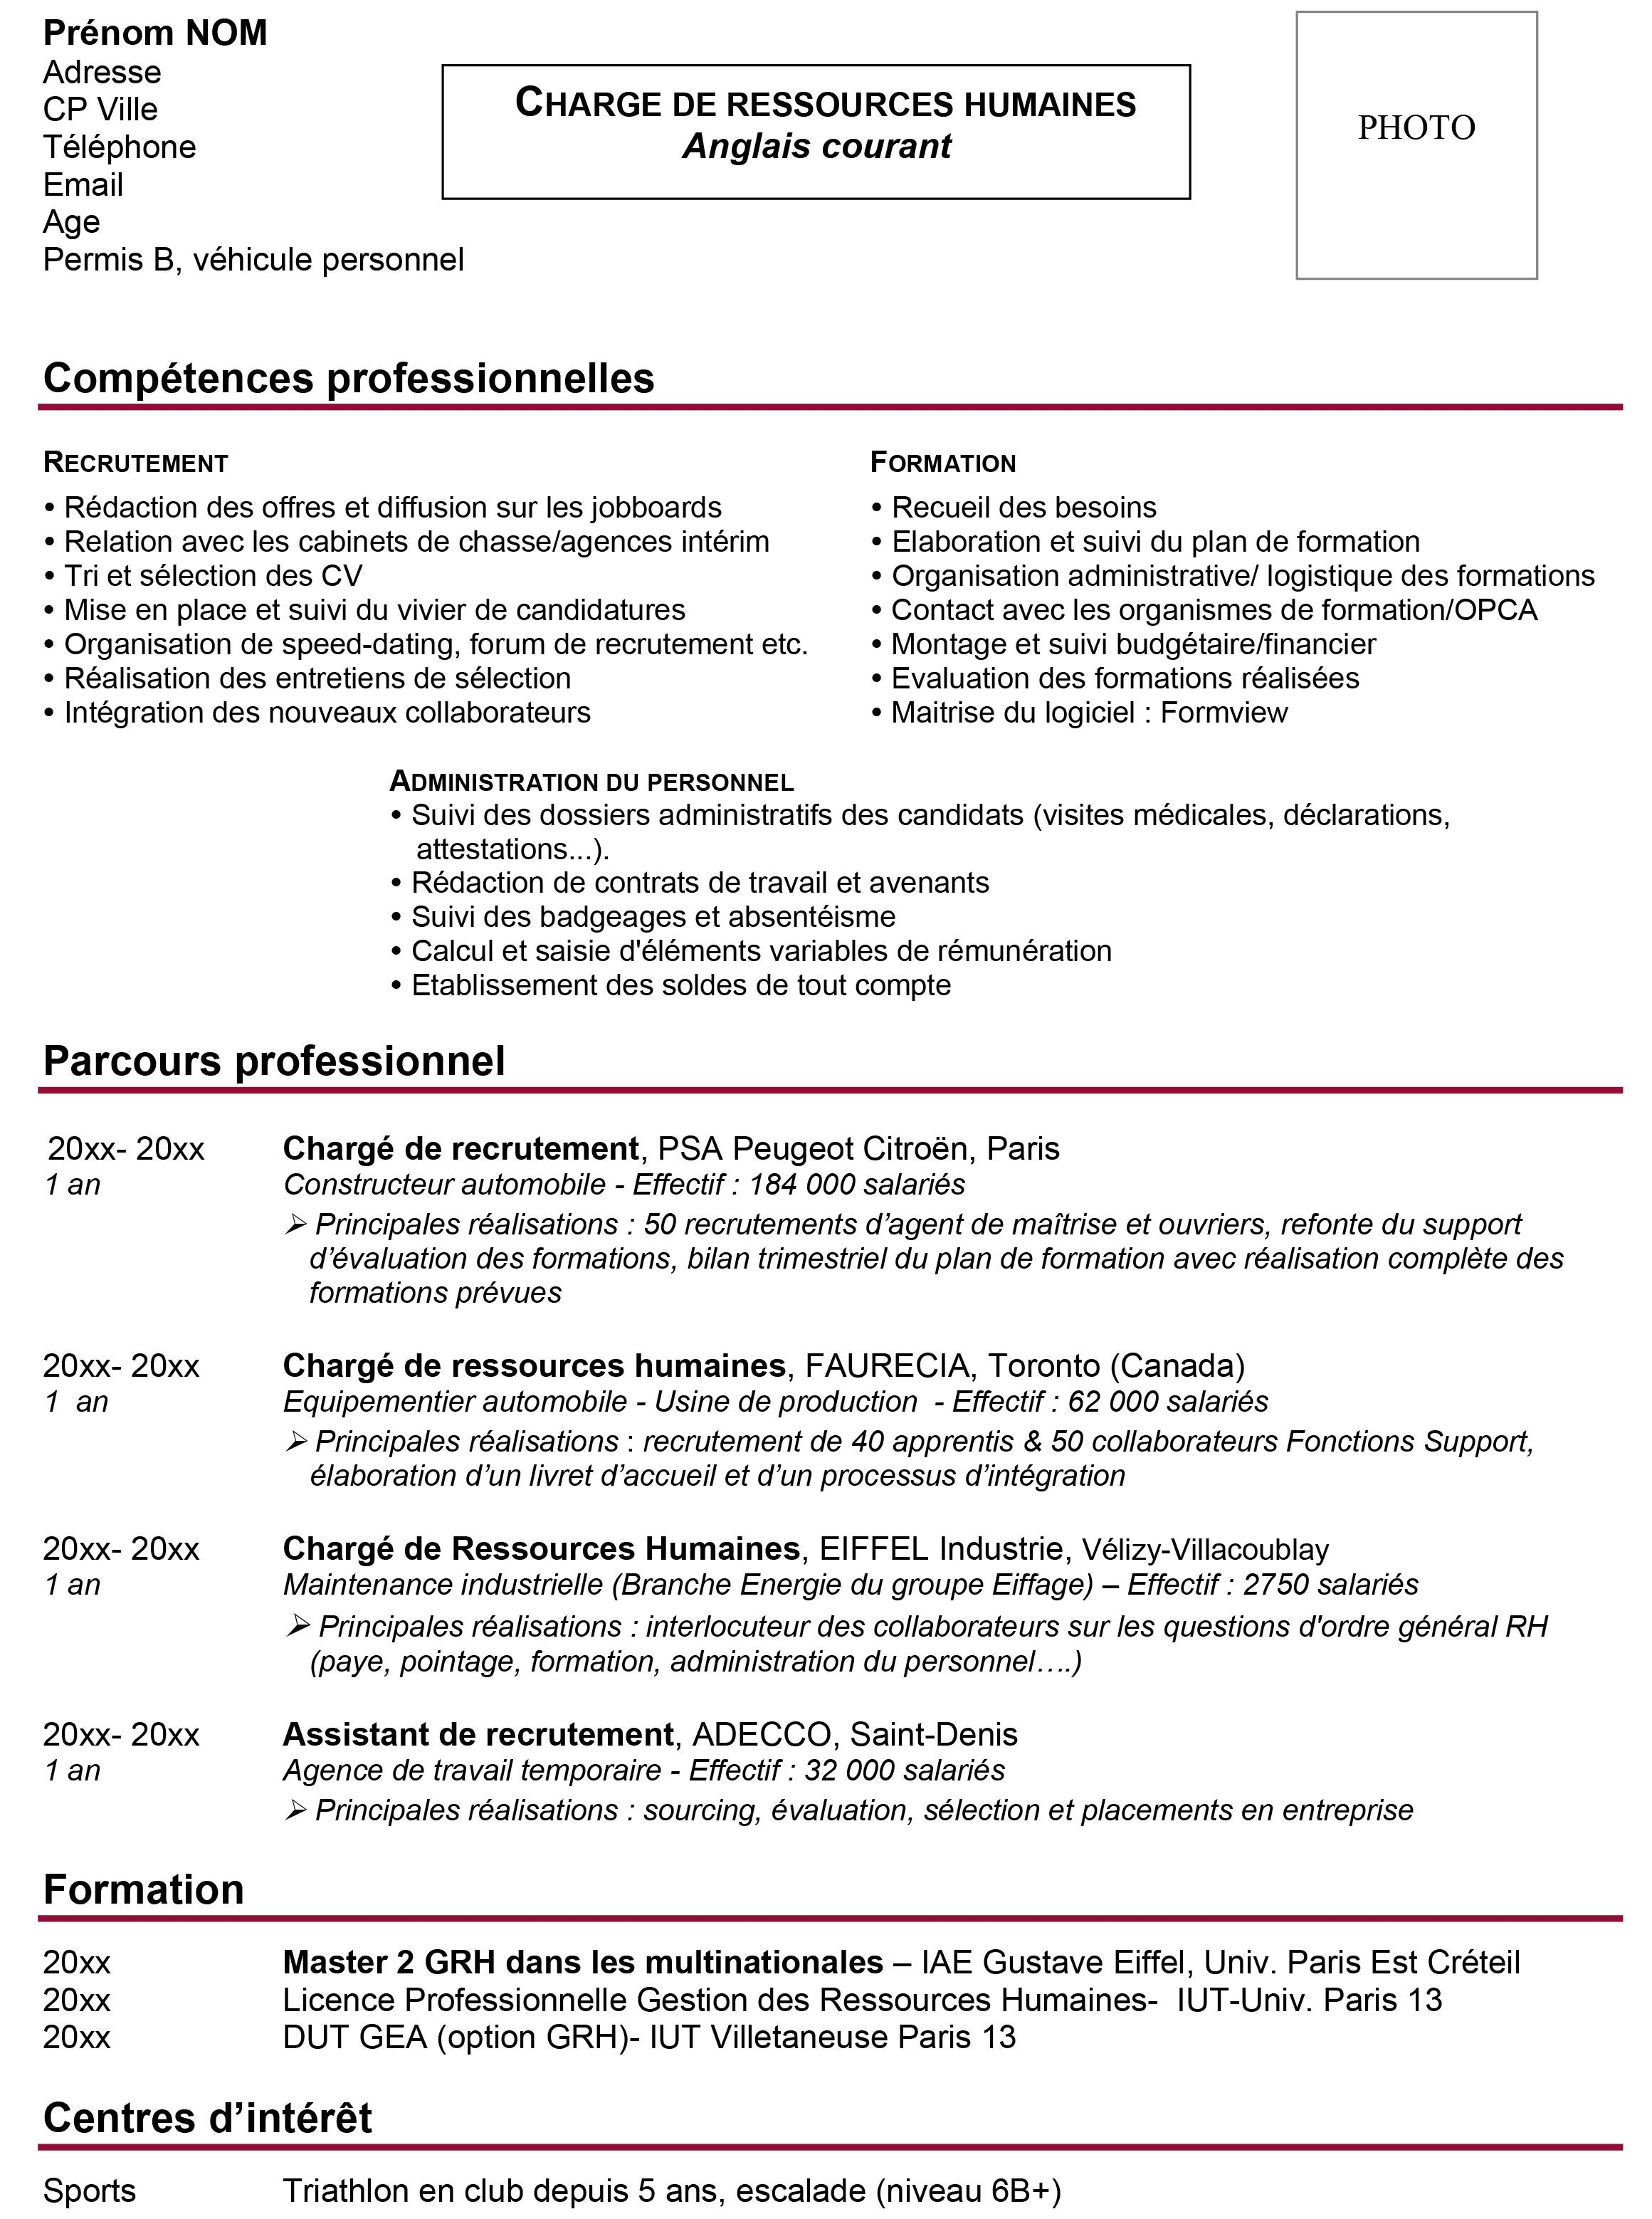 Exemple De Cv Par Competences Objectif Emploi Orientation Lettre De Motivation Exemple De Lettre Modele Lettre De Motivation